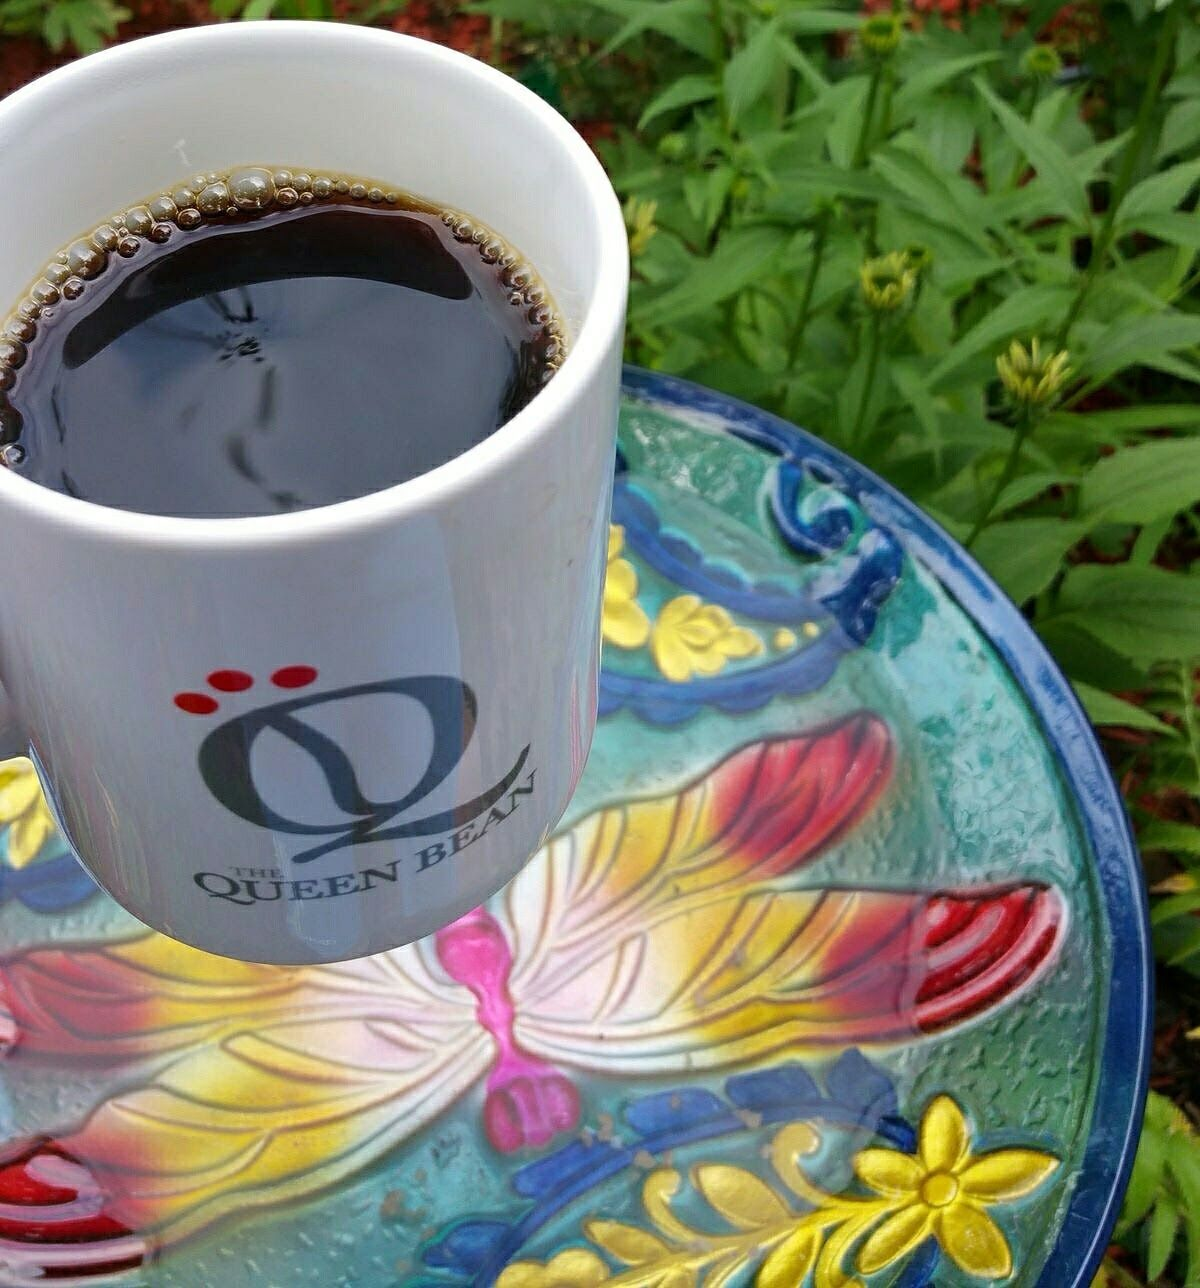 Pin By Cindy Pearl On Queen Bean Coffee Company Coffee Company Beans Coffee Beans